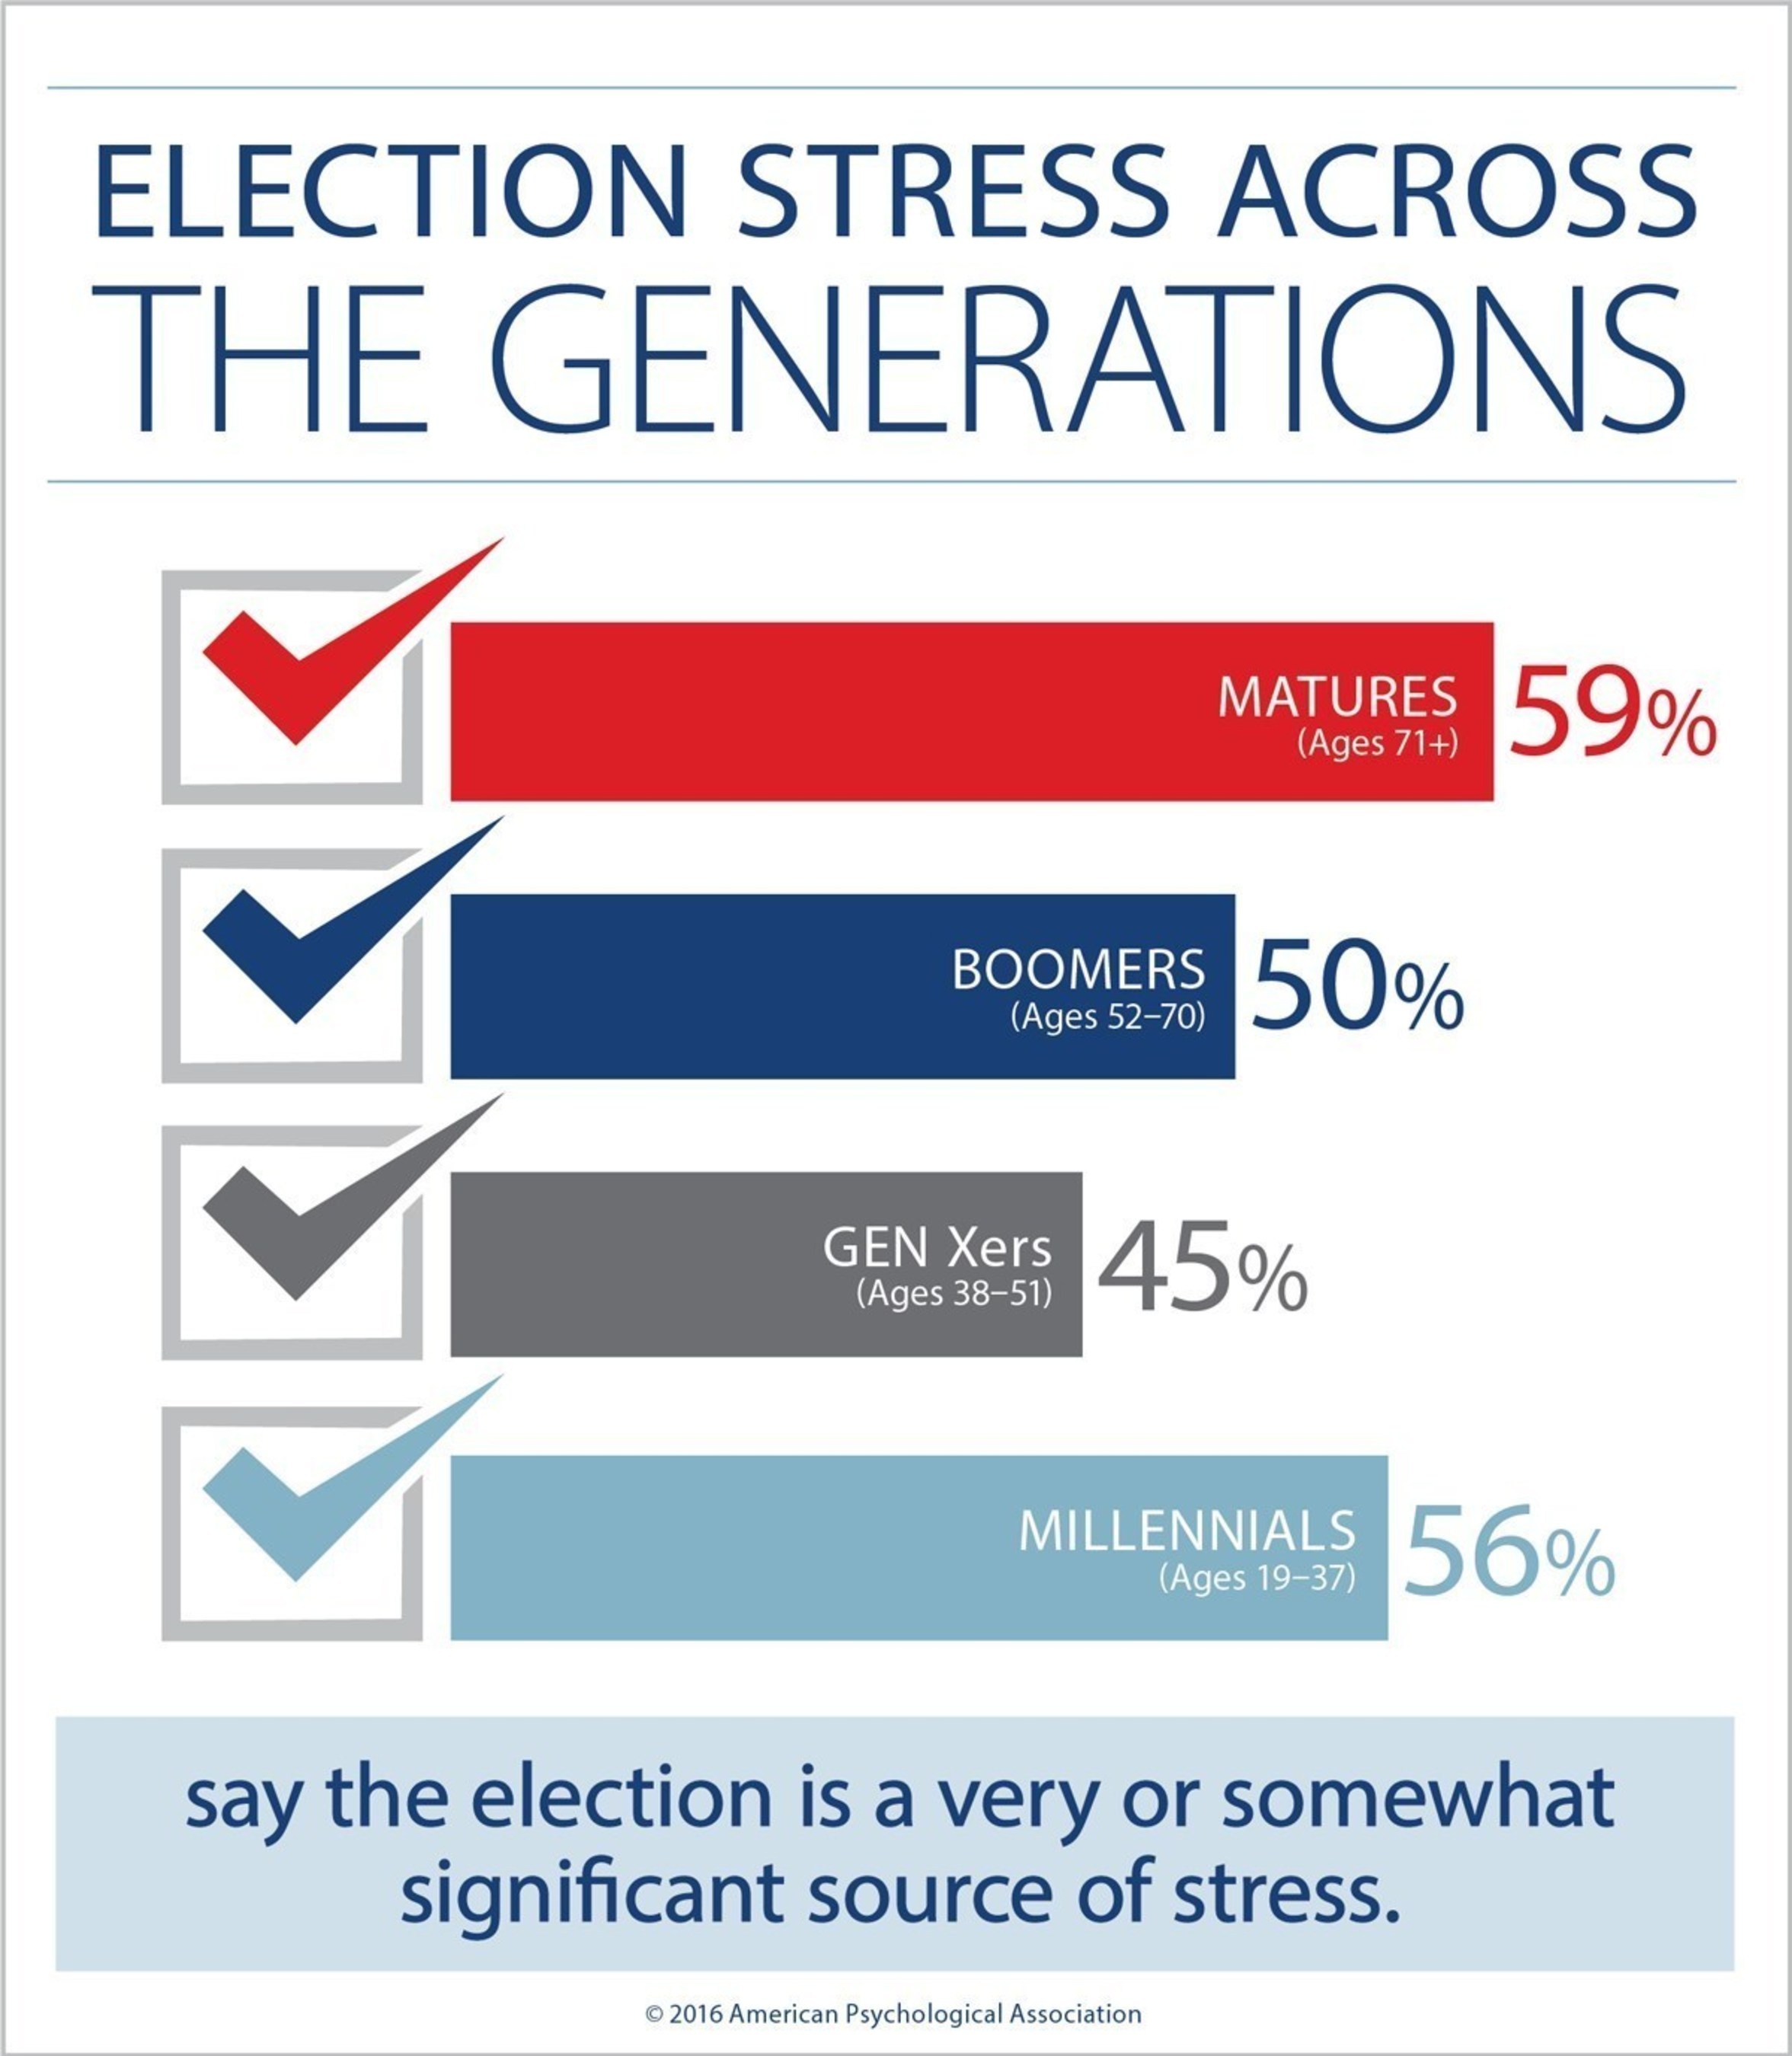 A majority of Americans say that they are stressed about the upcoming presidential election, but more older adults and millennials say the presidential election is a source of stress than Gen Xers and boomers.